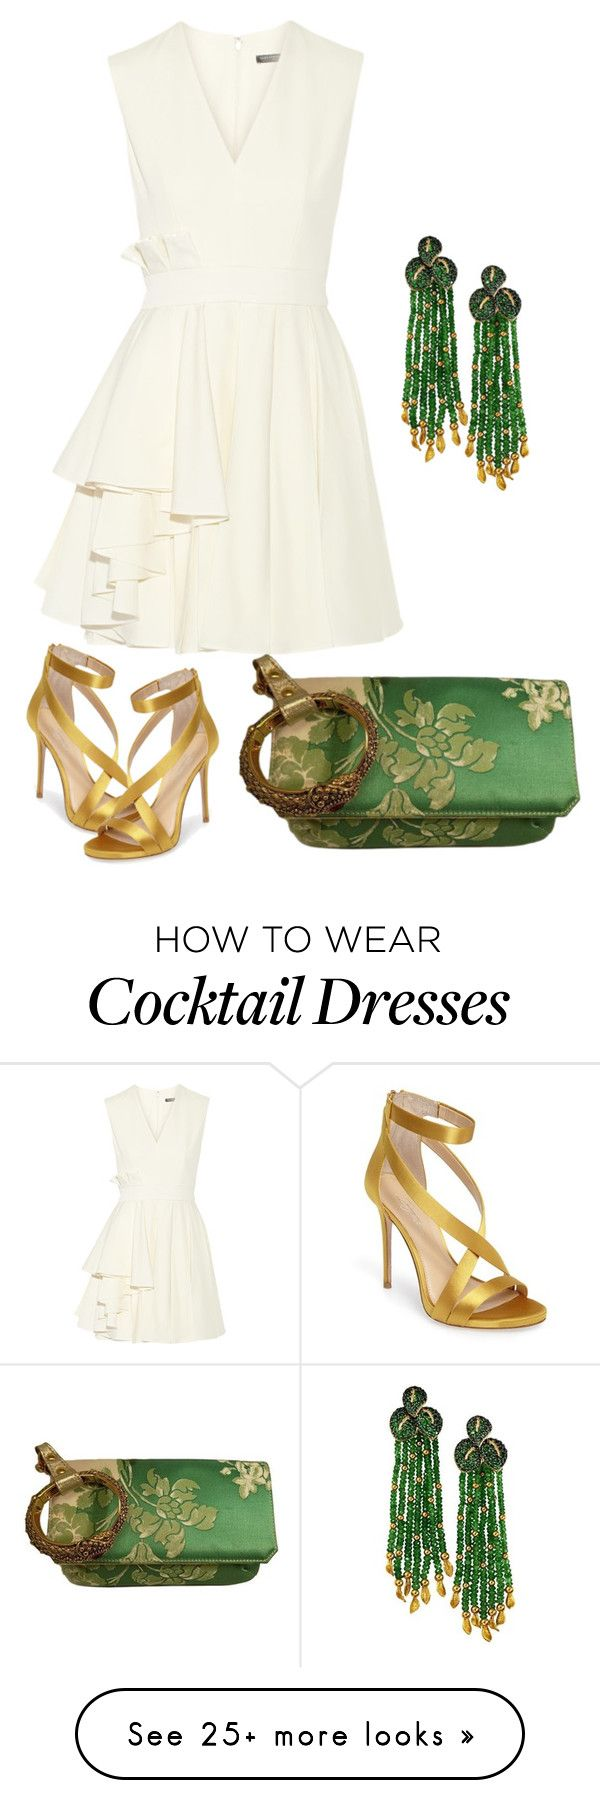 """Cocktail time"" by june-o-brown on Polyvore featuring Alexander McQueen, Roberto Cavalli, Imagine by Vince Camuto and Alex Soldier"